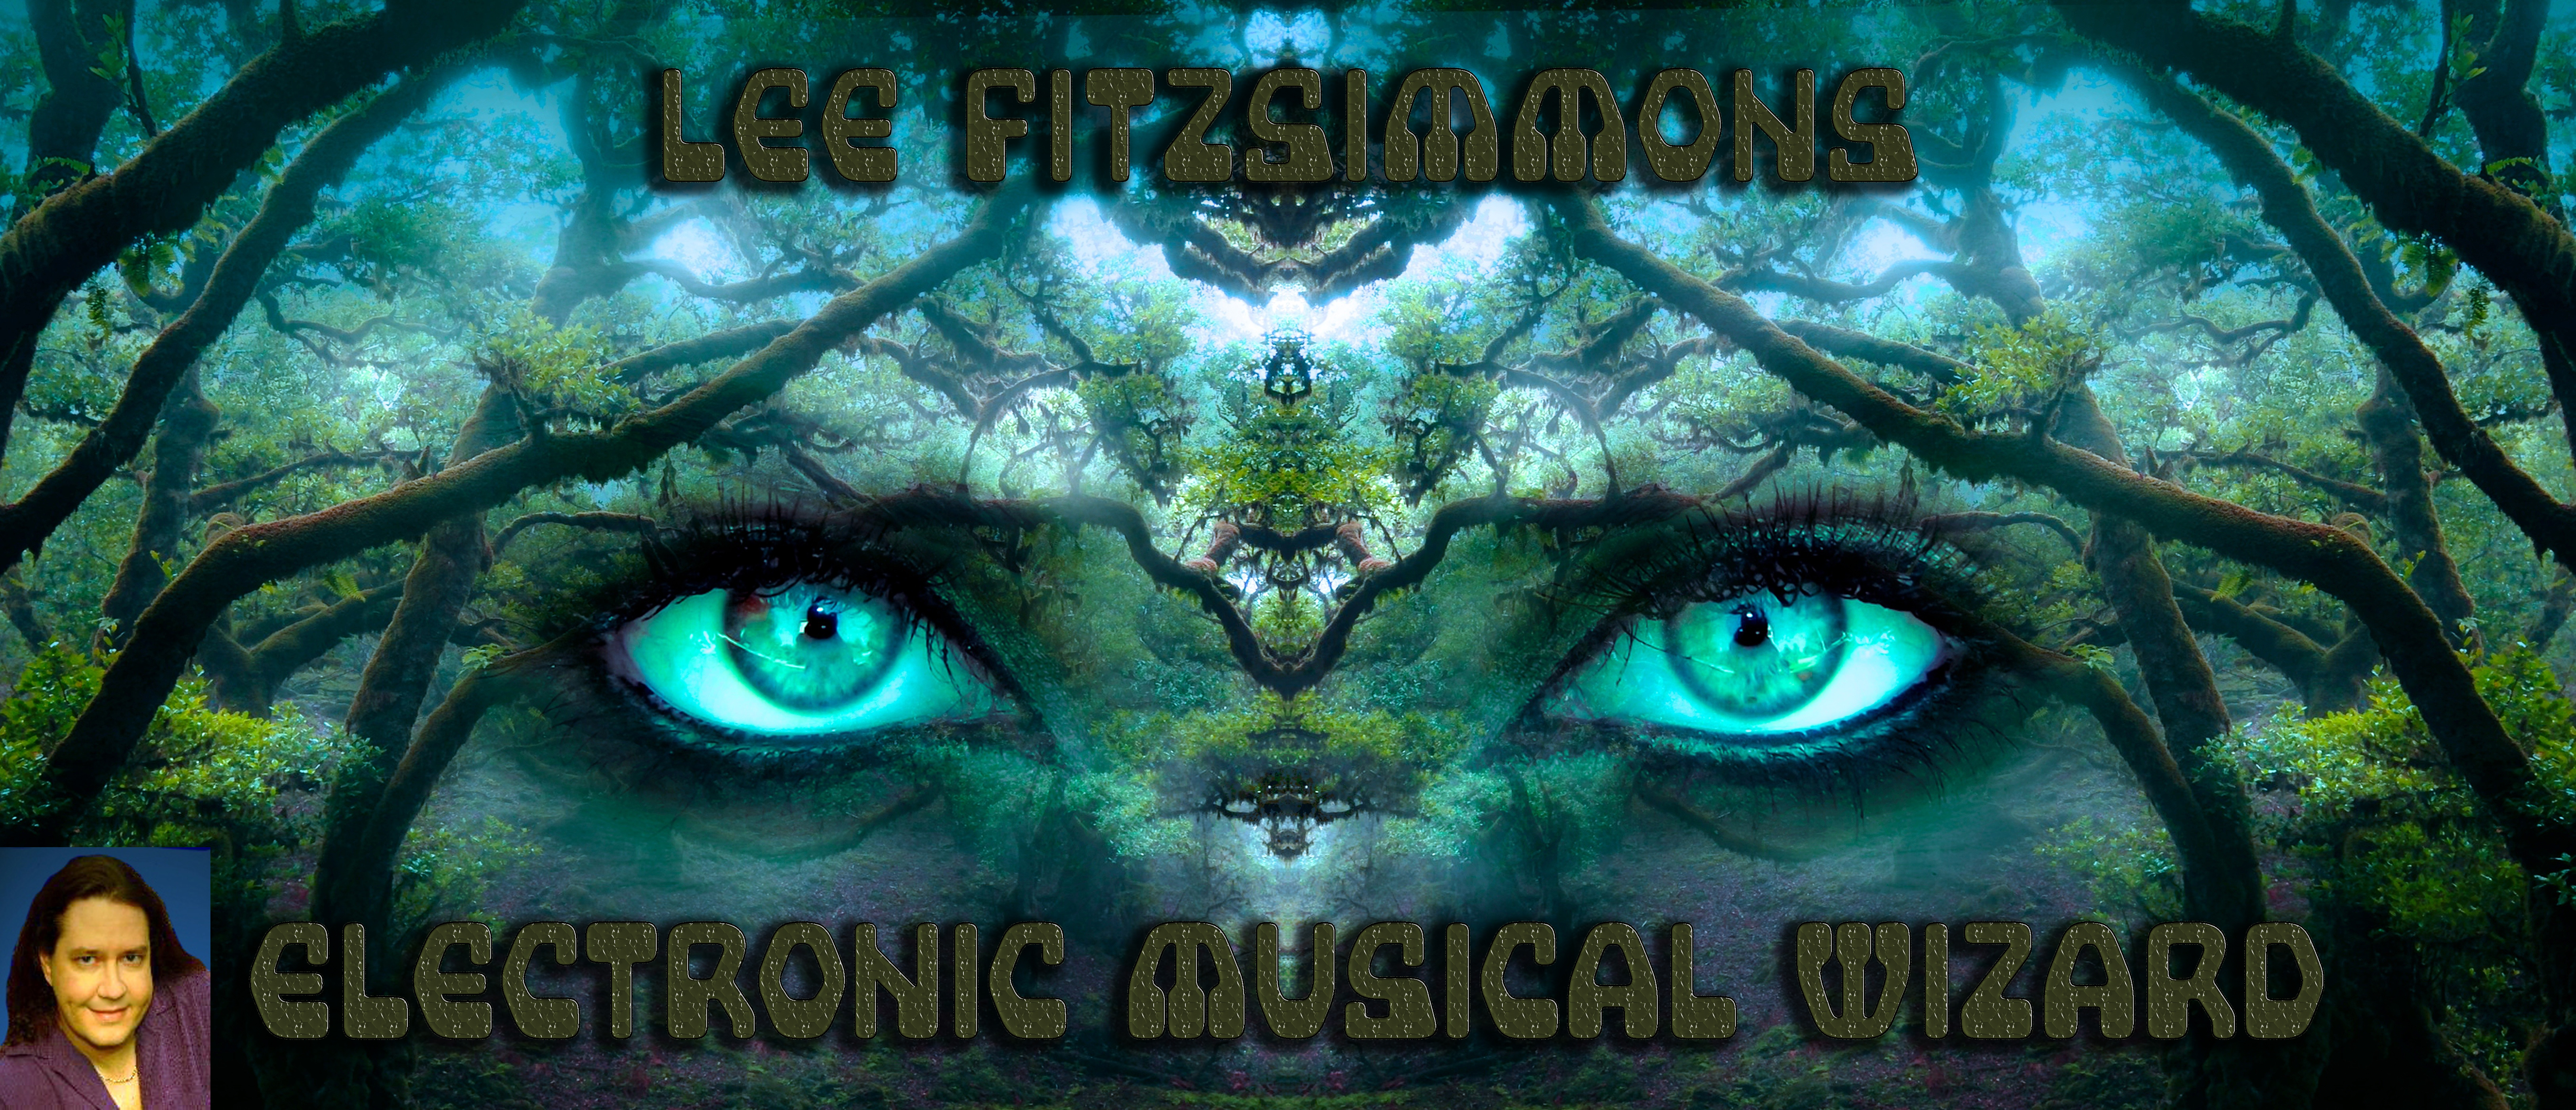 Electronic Musical Wizard